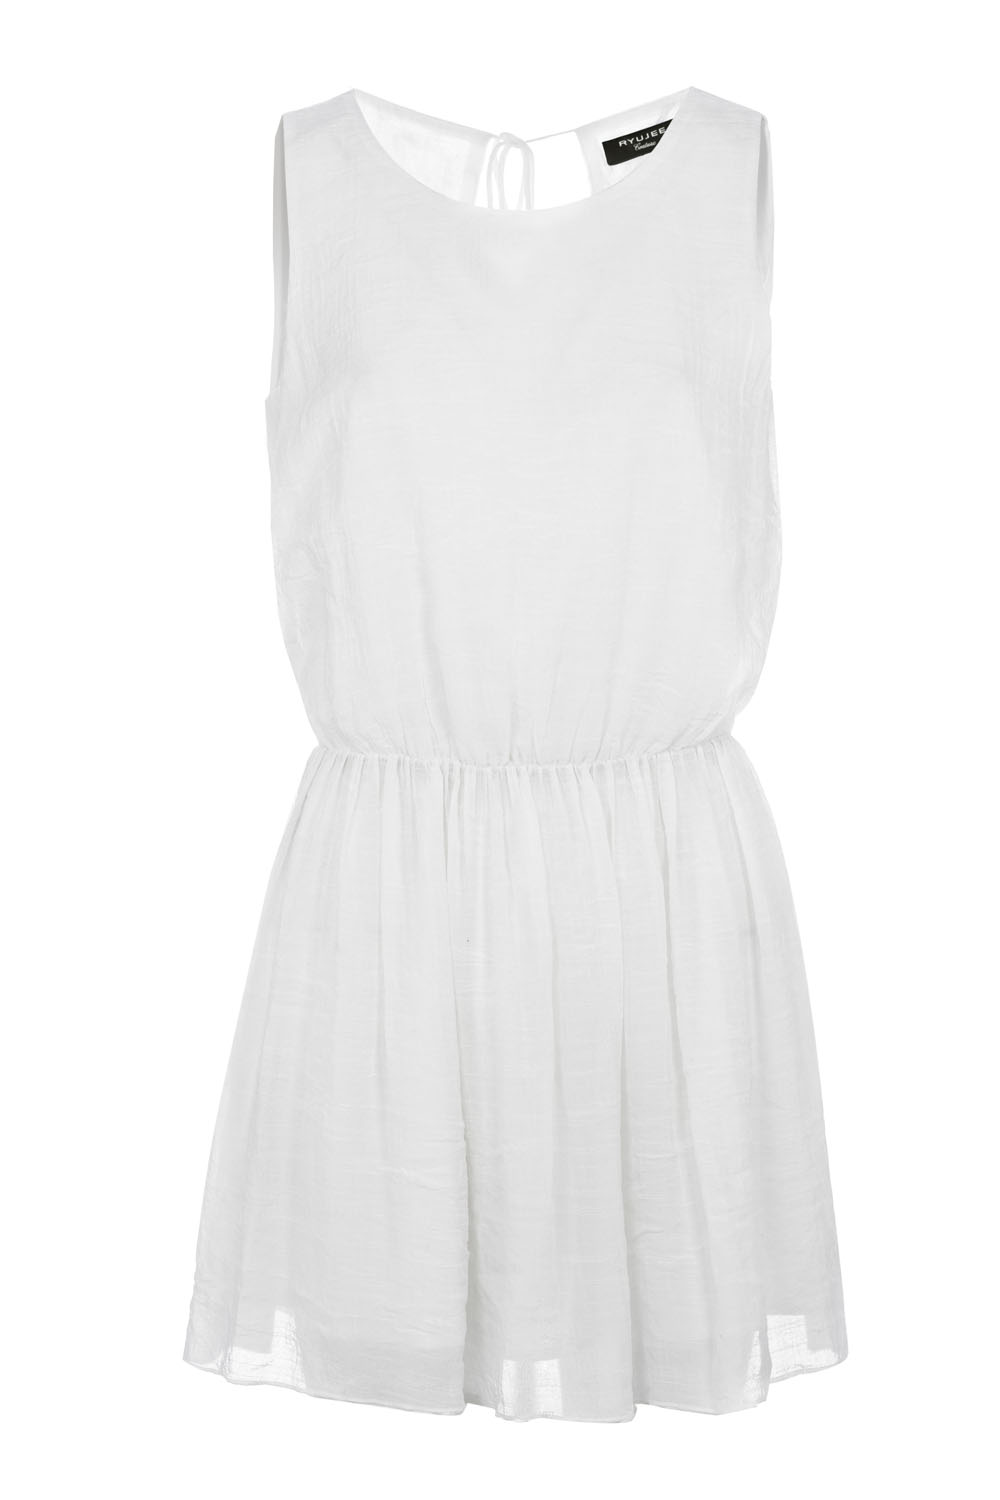 robe blanche ghost